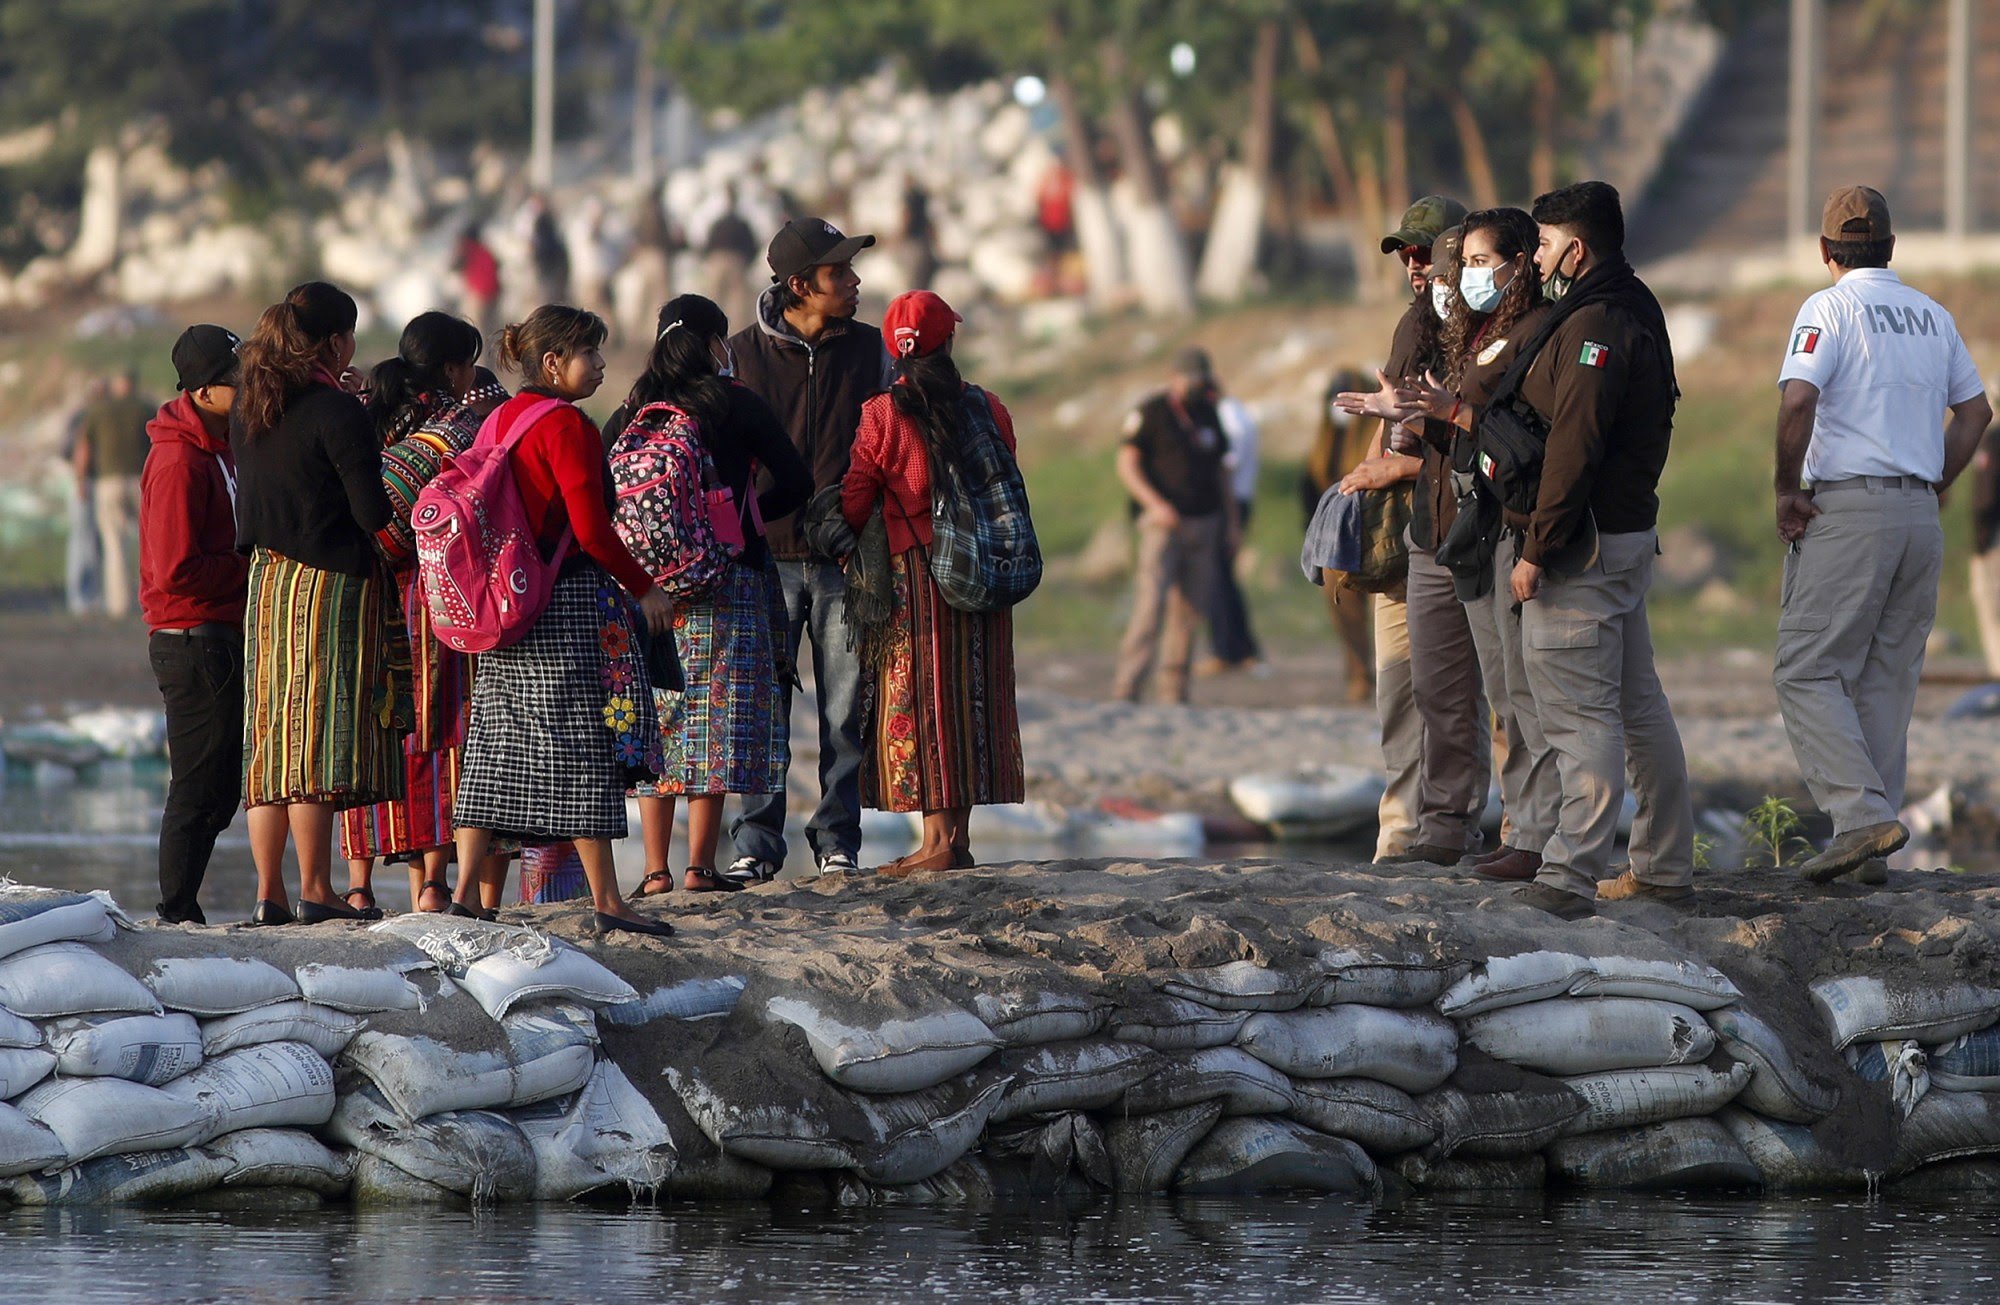 Mexican officials confronting immigrants at the US-Mexico border